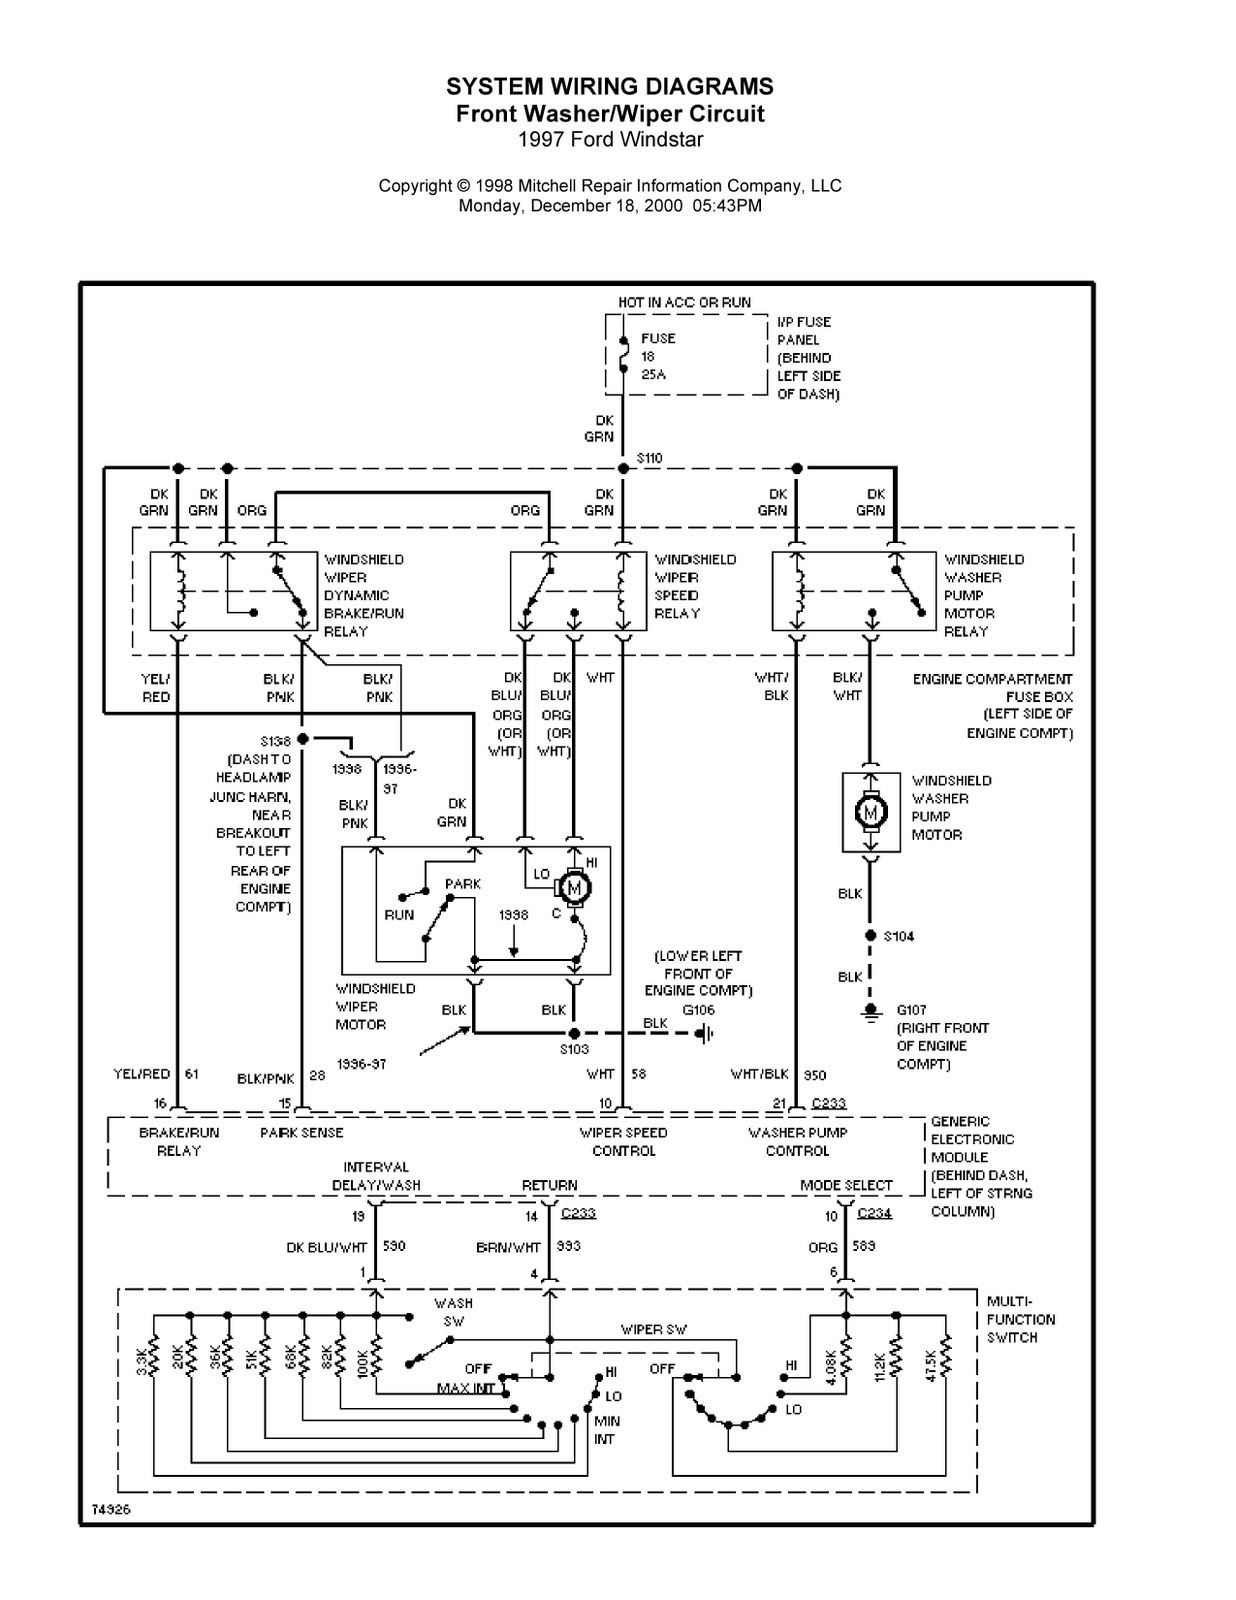 0051 1997 ford windstar complete system wiring diagrams wiring 2005 Dodge Grand Caravan Wiring Diagram at reclaimingppi.co